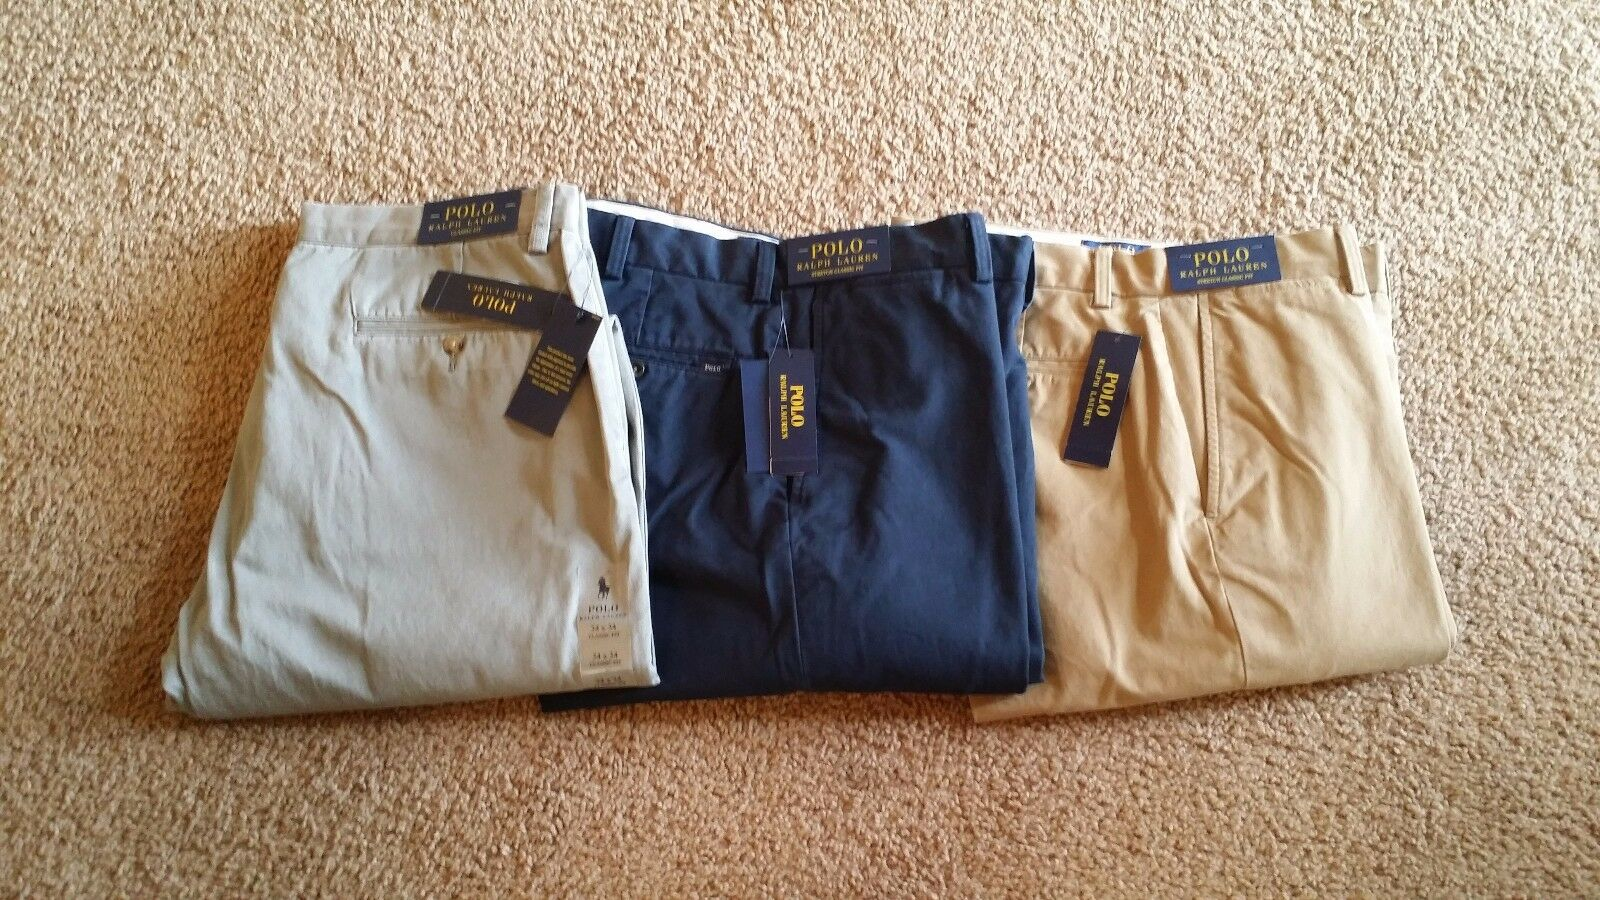 Polo Ralph Lauren GENUINE Casual Pants  Flat Front  Brand New  Very good Quality